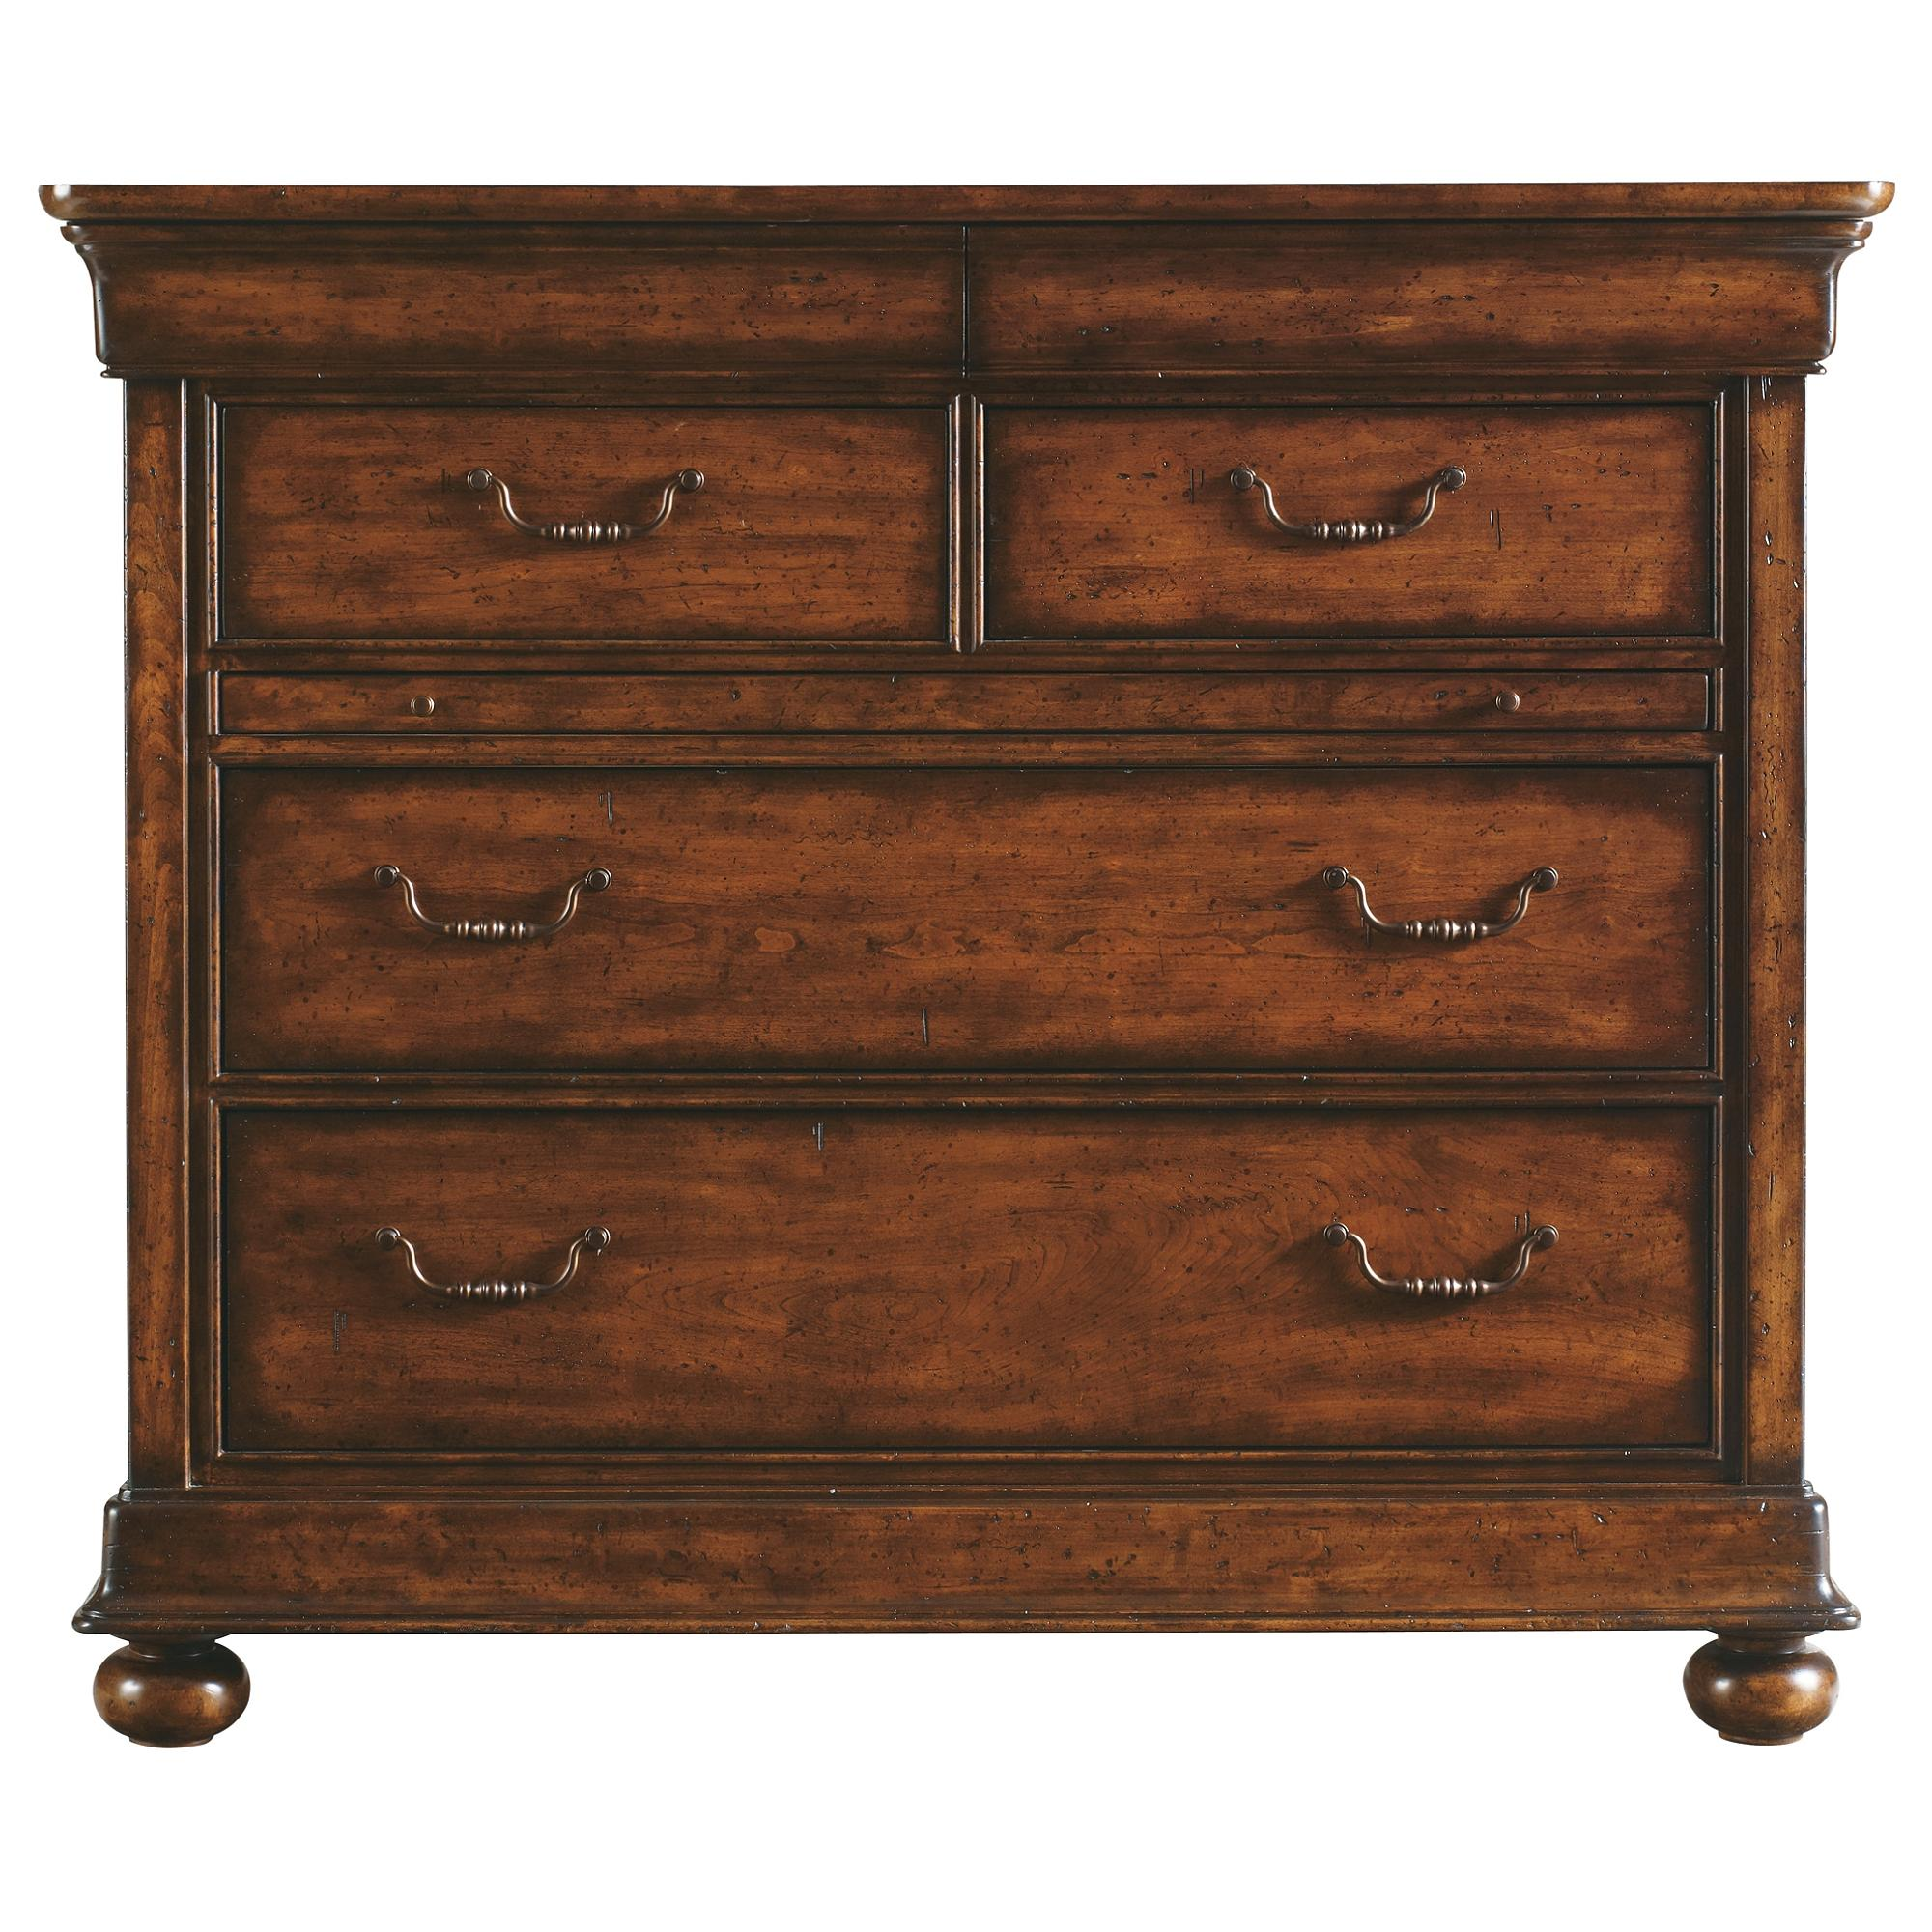 Stanley Furniture The Classic Portfolio - Louis Philippe Media Chest - Item Number: 058-63-11